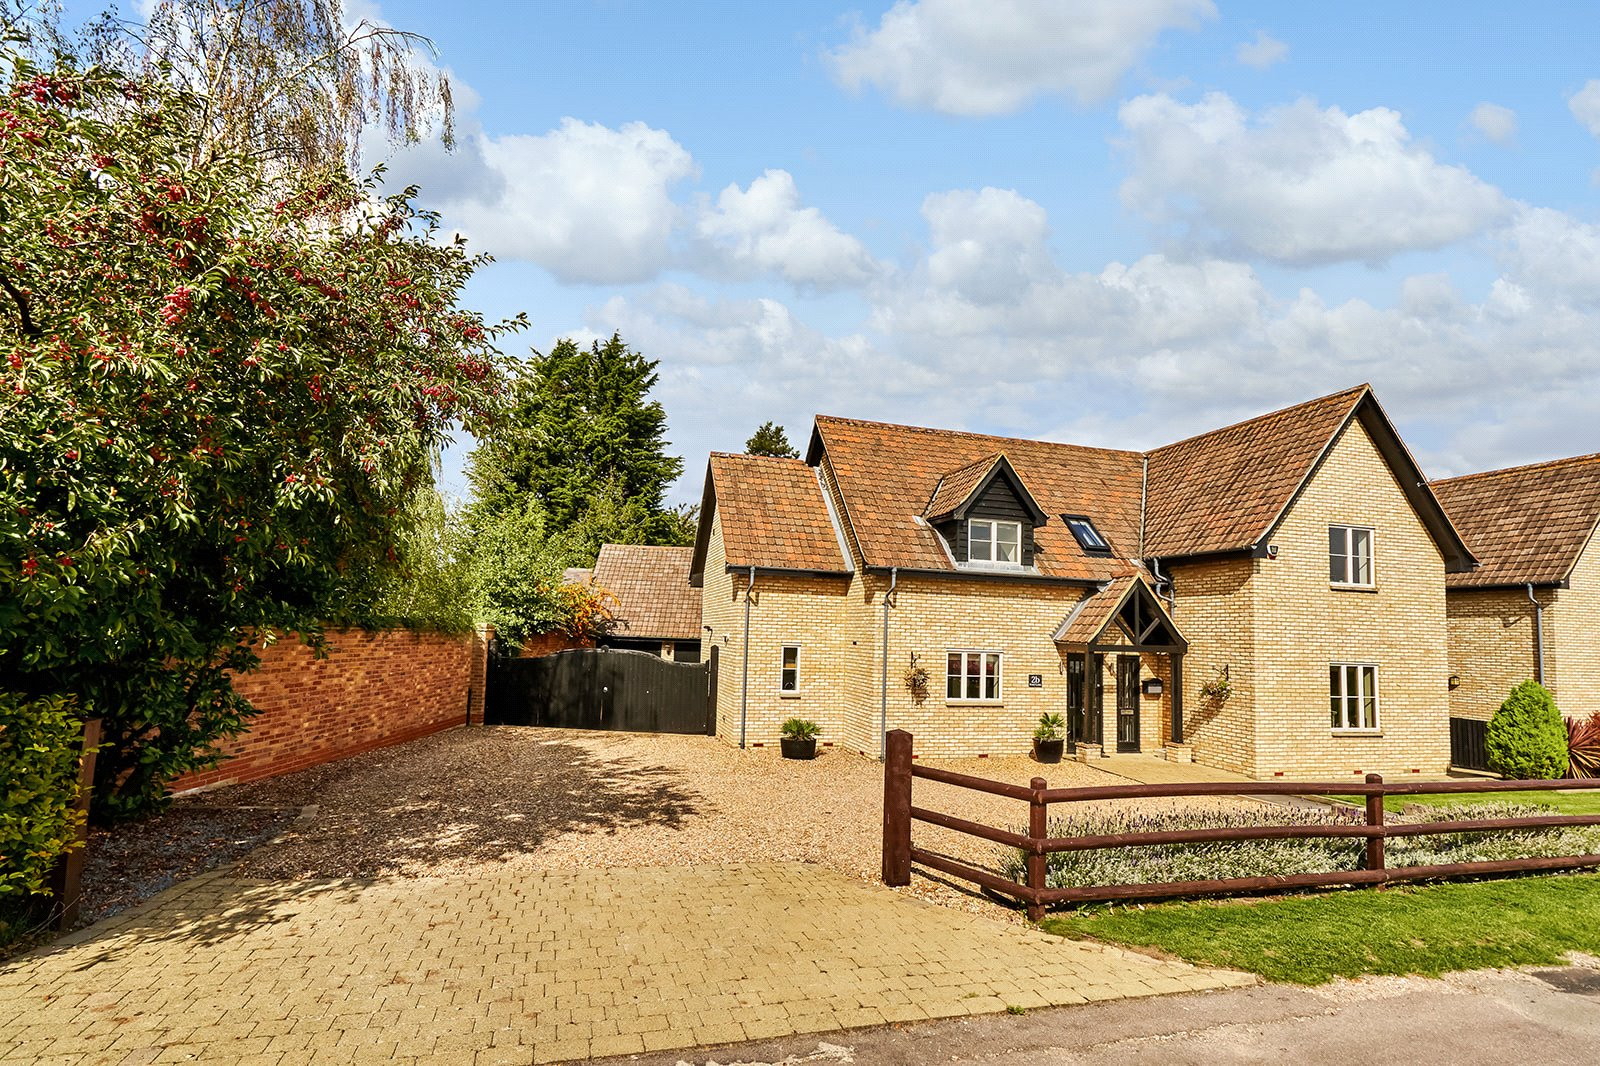 4 bed house for sale in Roxton, MK44 3EJ, MK44